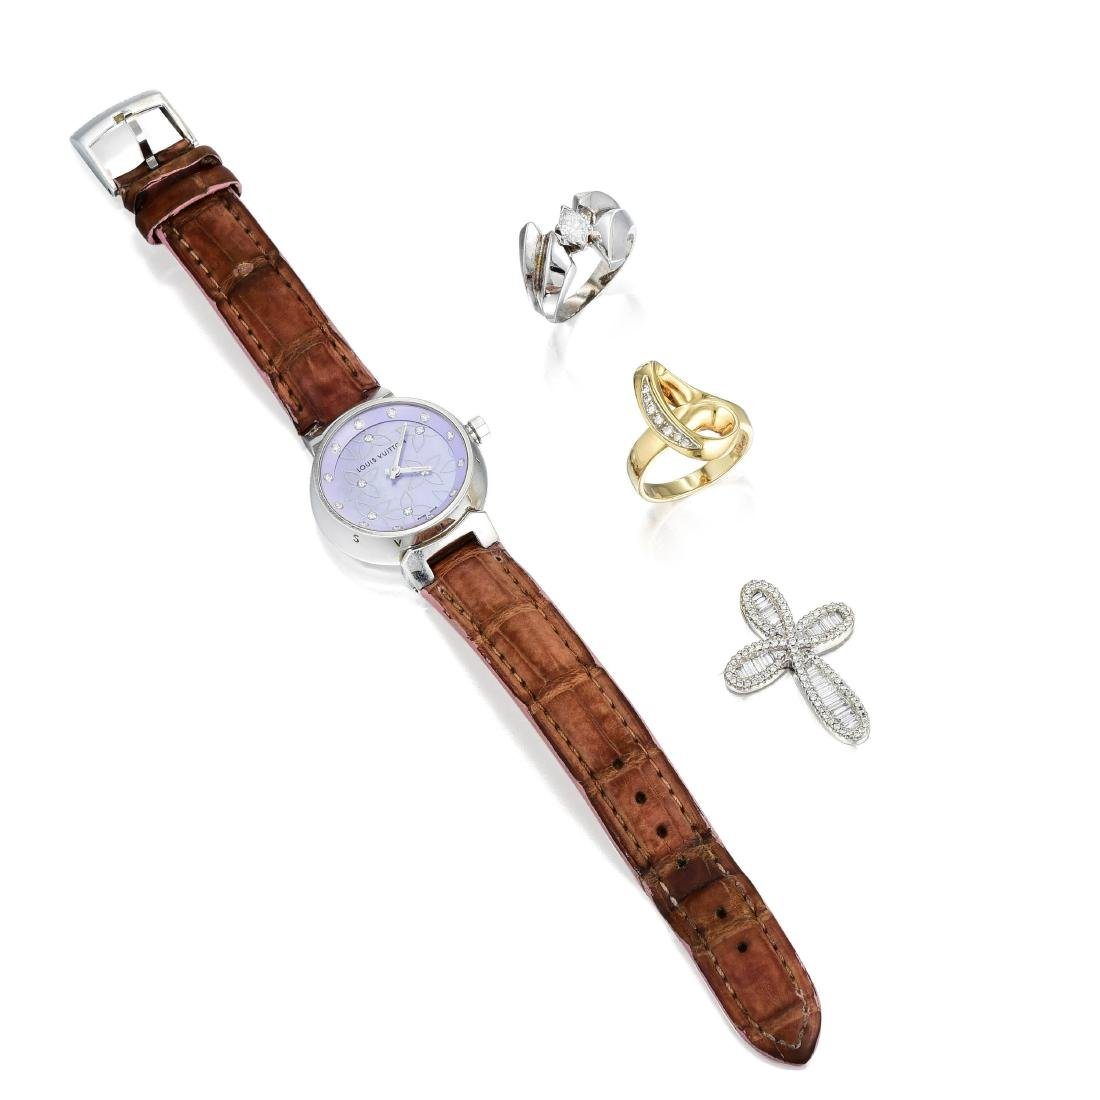 Louis Vuitton Stainless Steel Ladies Watch and a Group